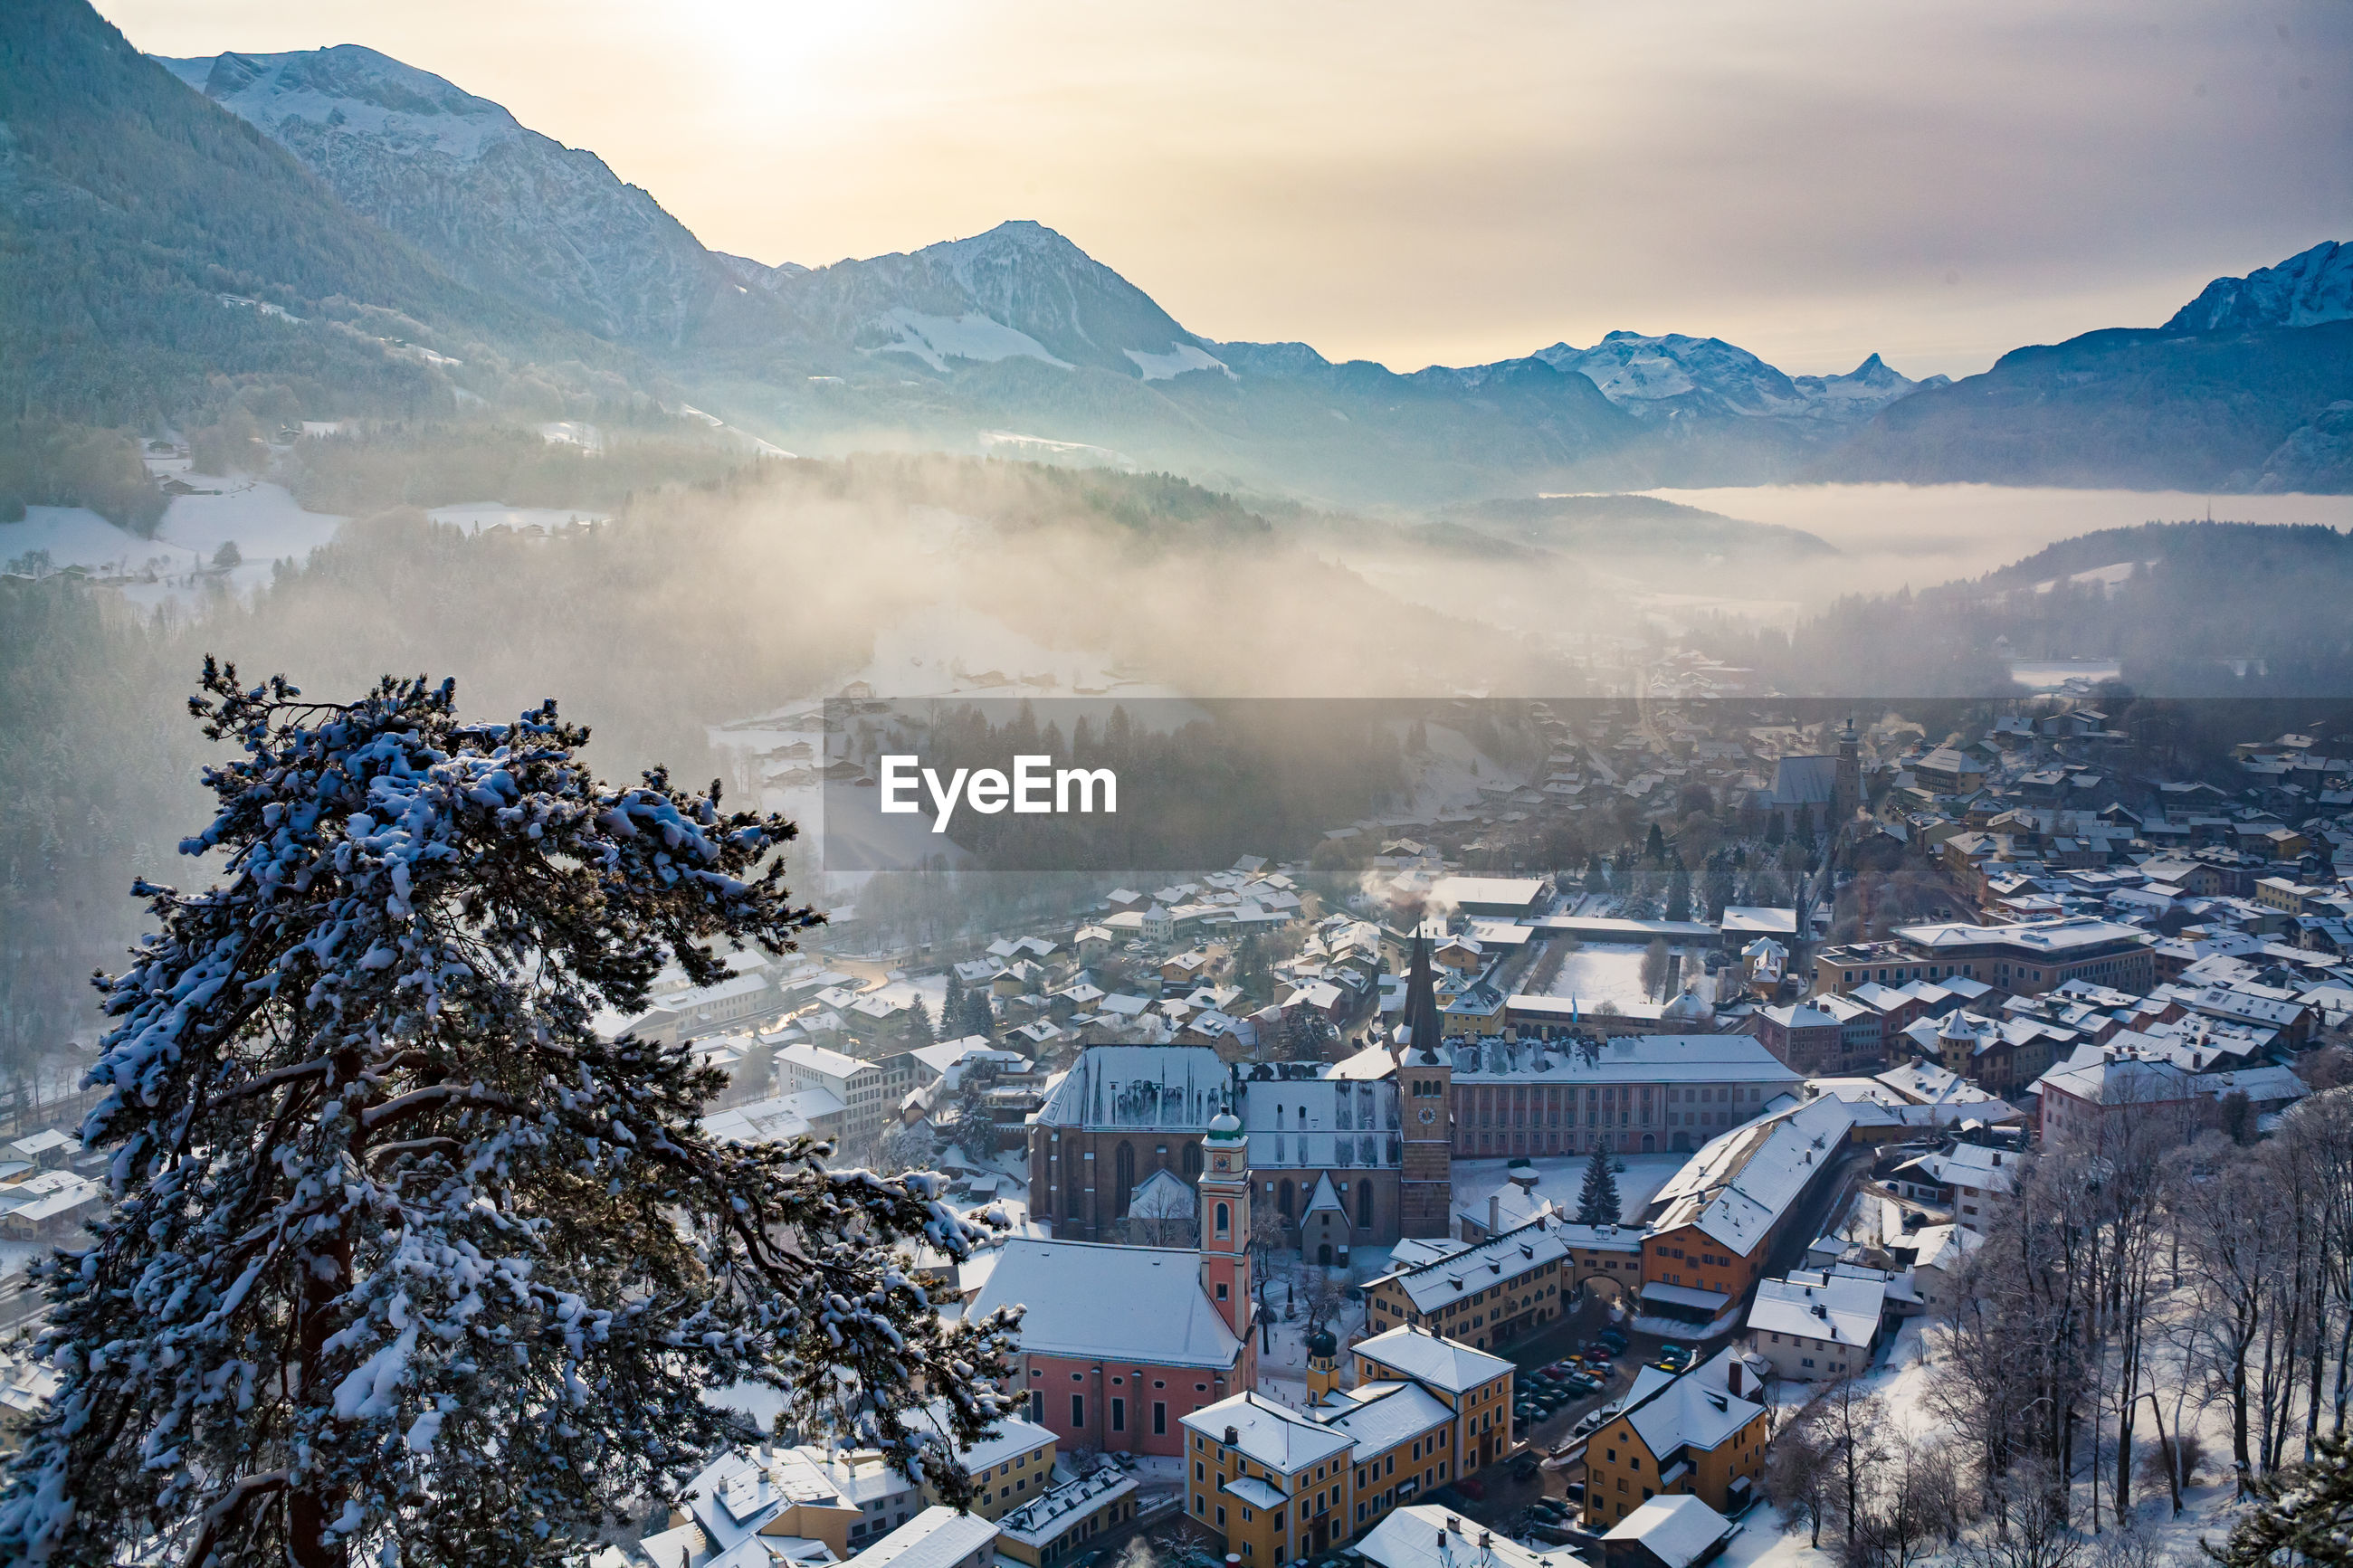 Aerial view of townscape and mountains during winter